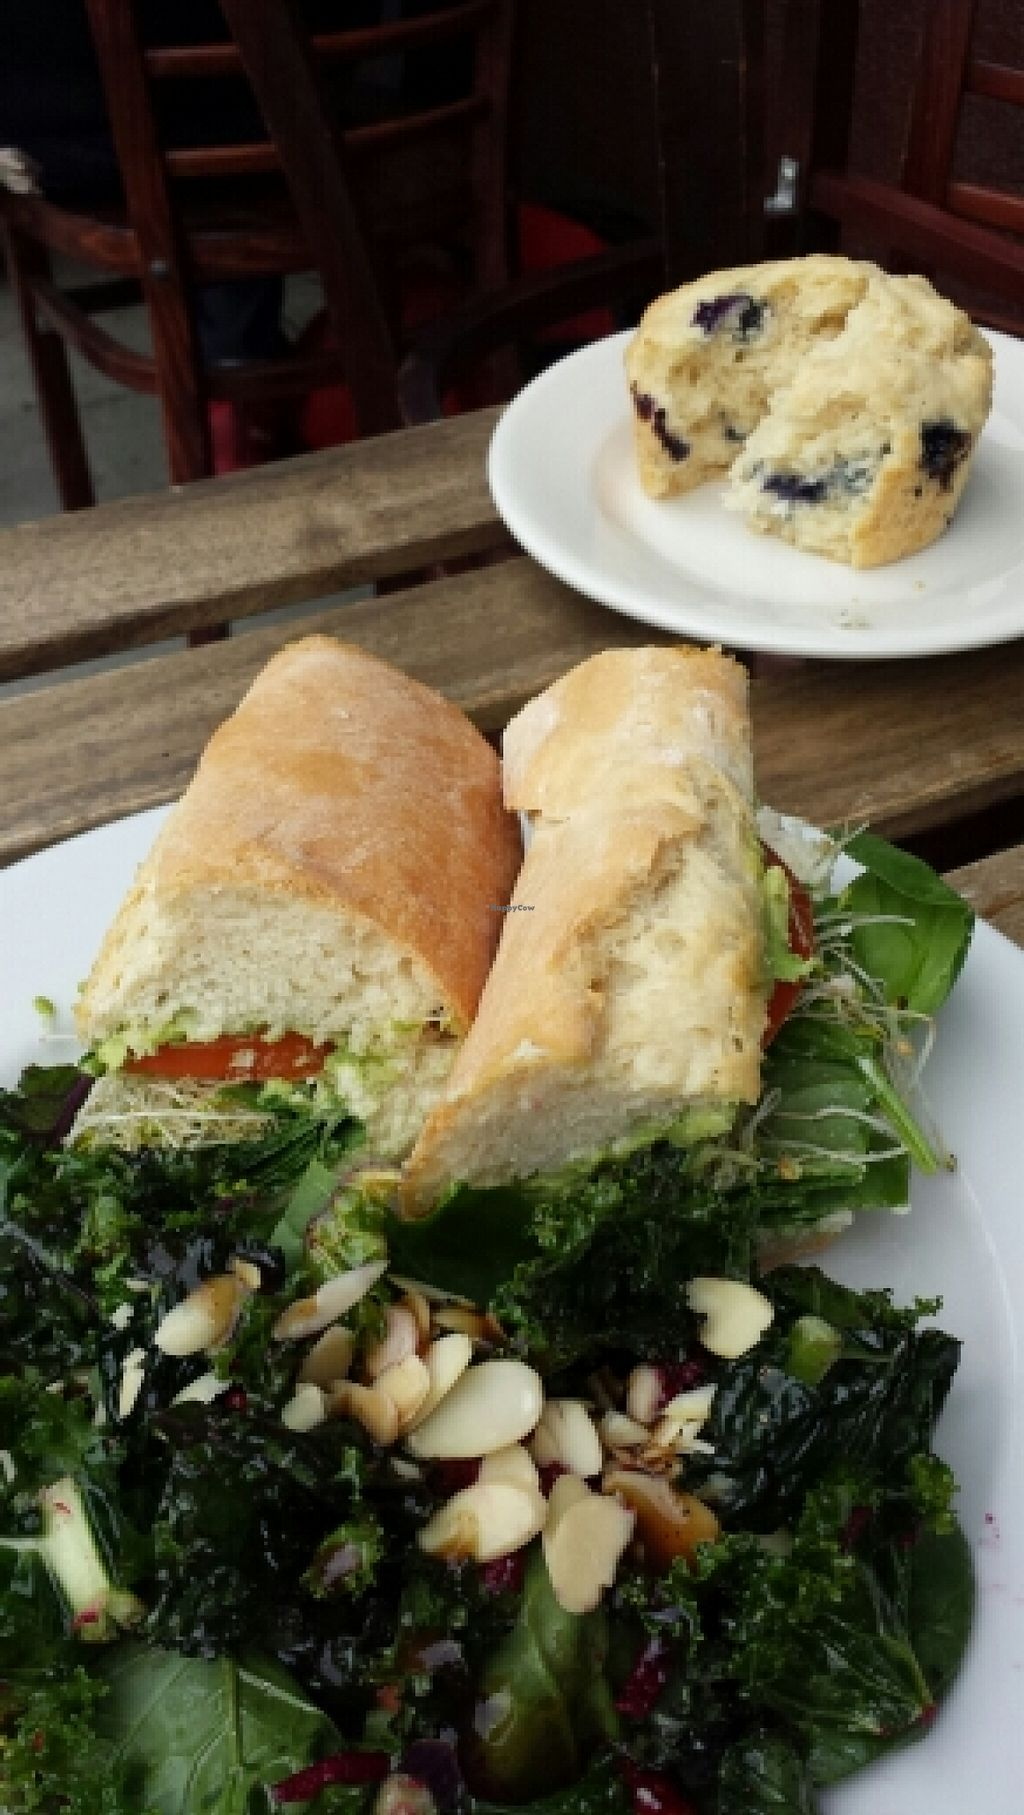 "Photo of Two Mammas Vegan Kitchen  by <a href=""/members/profile/stixx"">stixx</a> <br/>Italian sandwich, kale, spinach salad and blueberry muffin <br/> April 8, 2016  - <a href='/contact/abuse/image/46820/143446'>Report</a>"